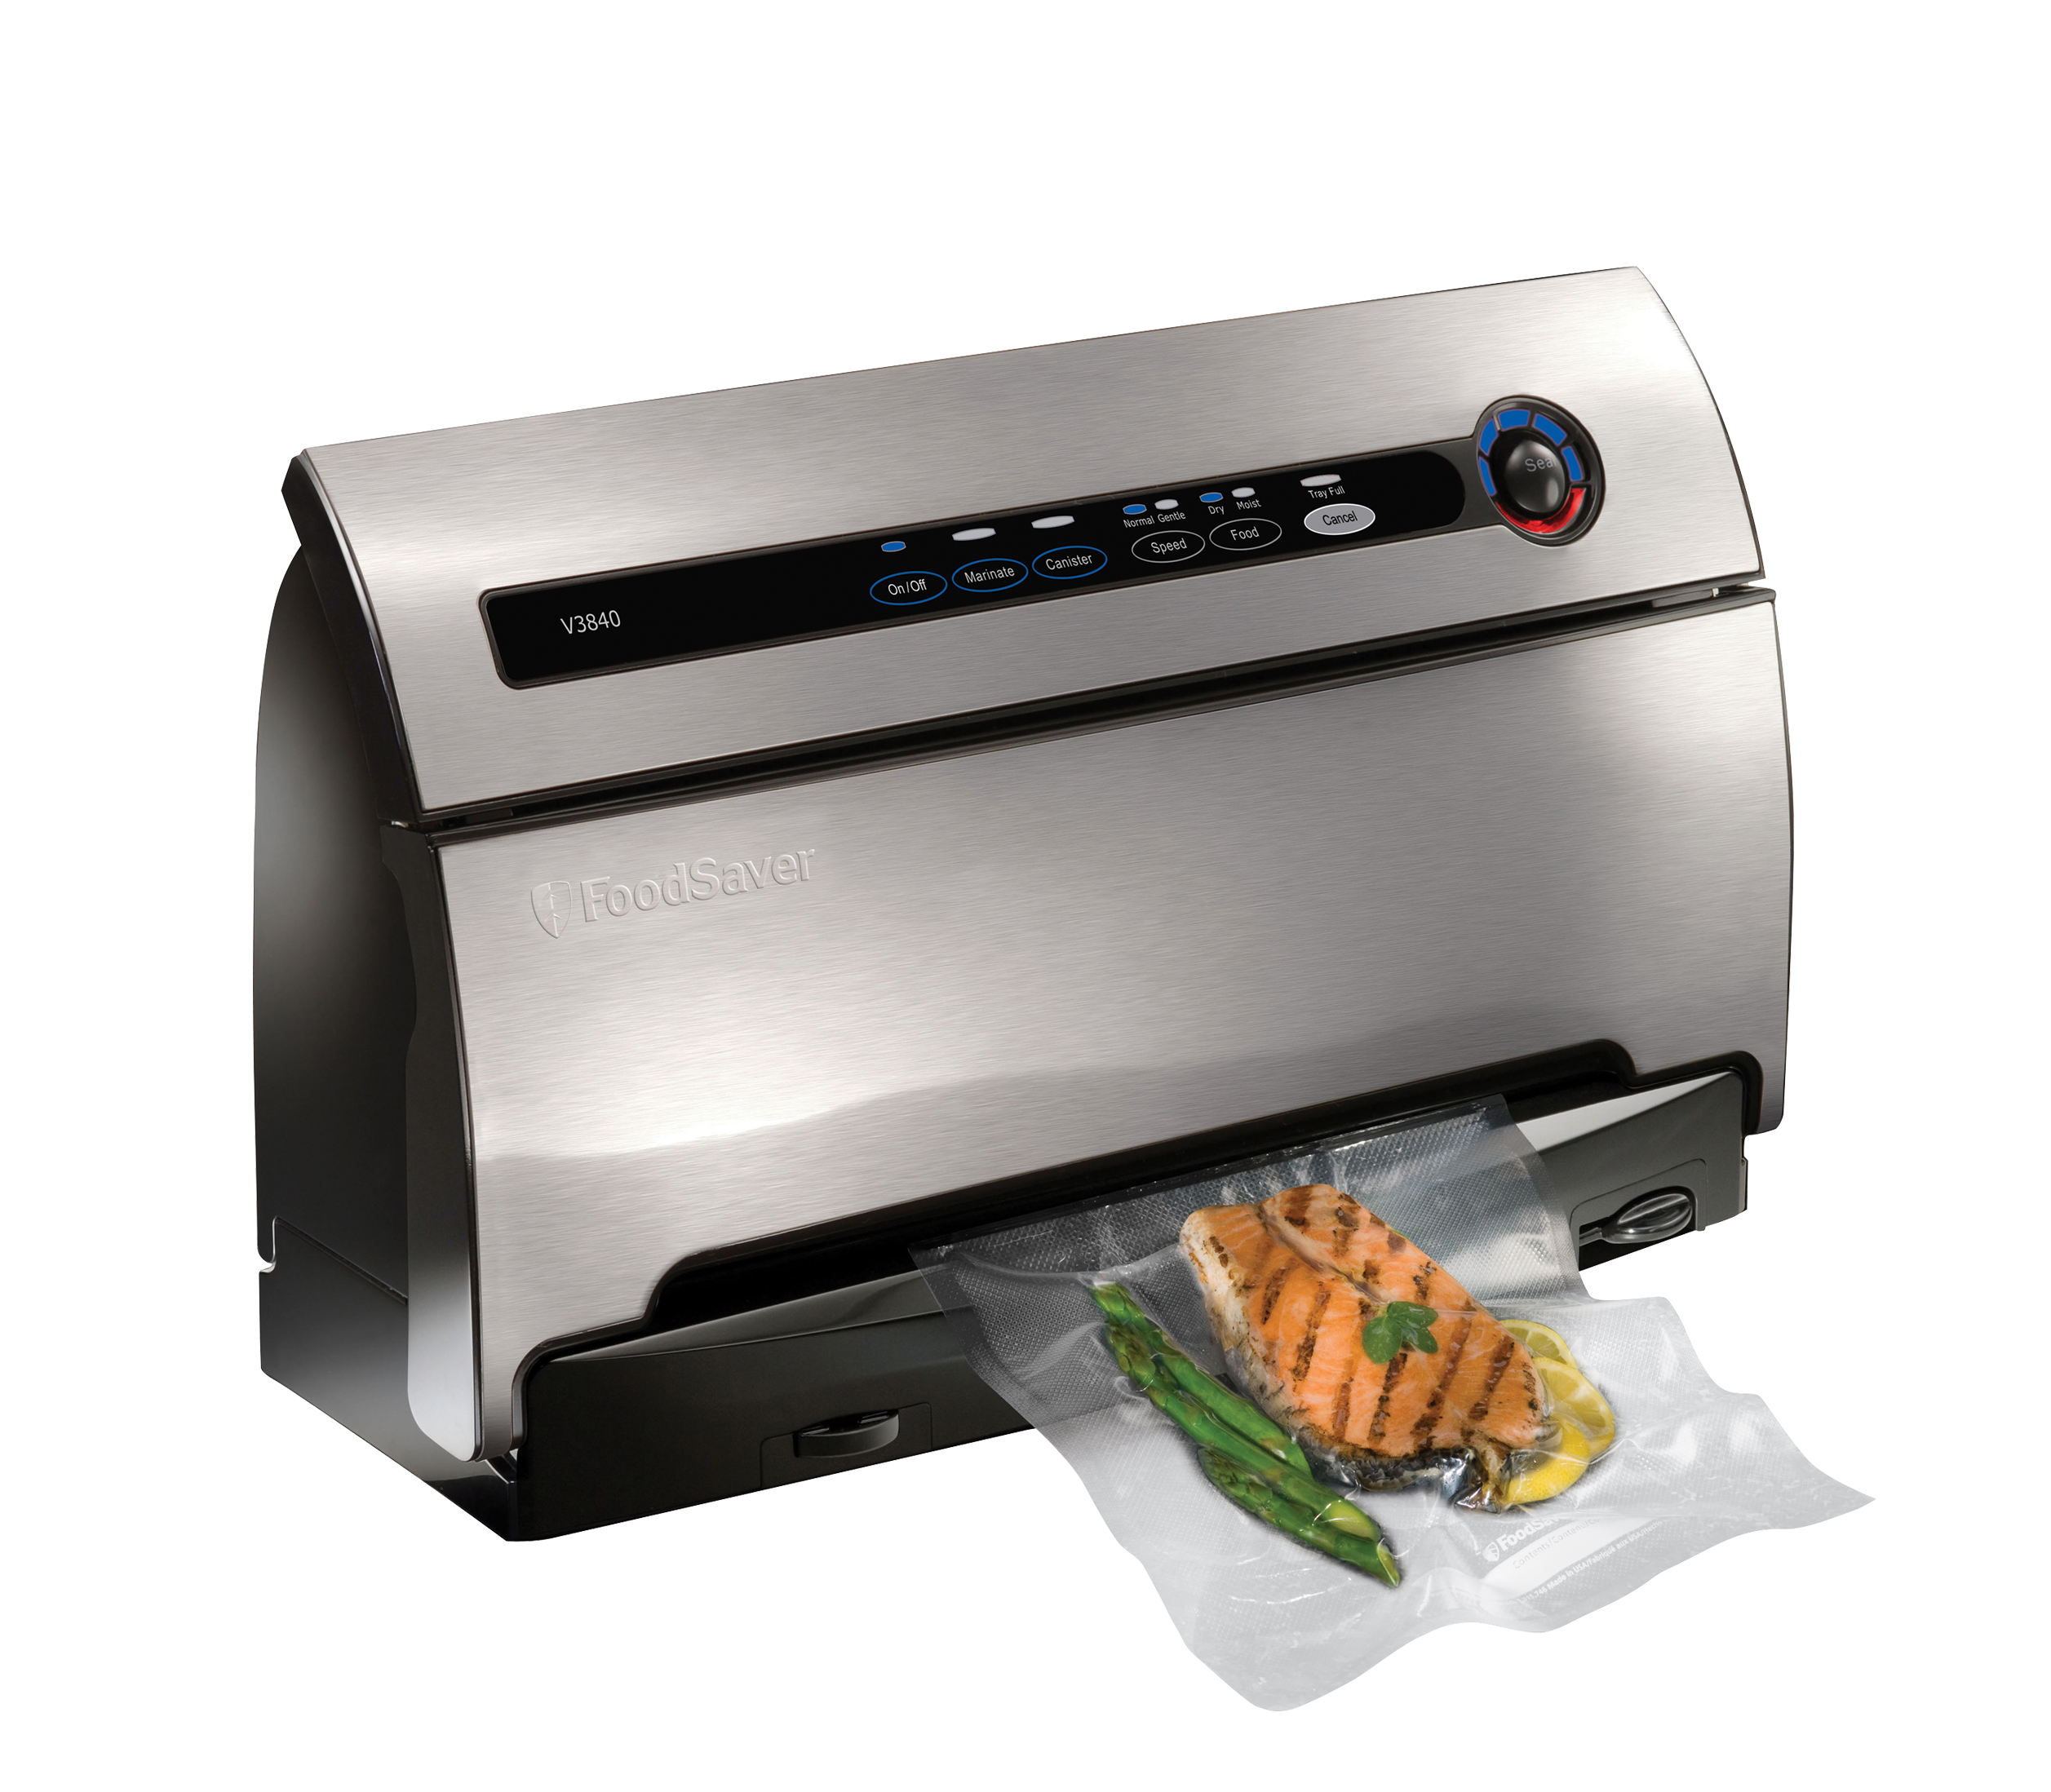 FoodSaver-Countertop-V3840-Vacuum-Sealing-System-Stainless-Steel-w-Starter-Kit